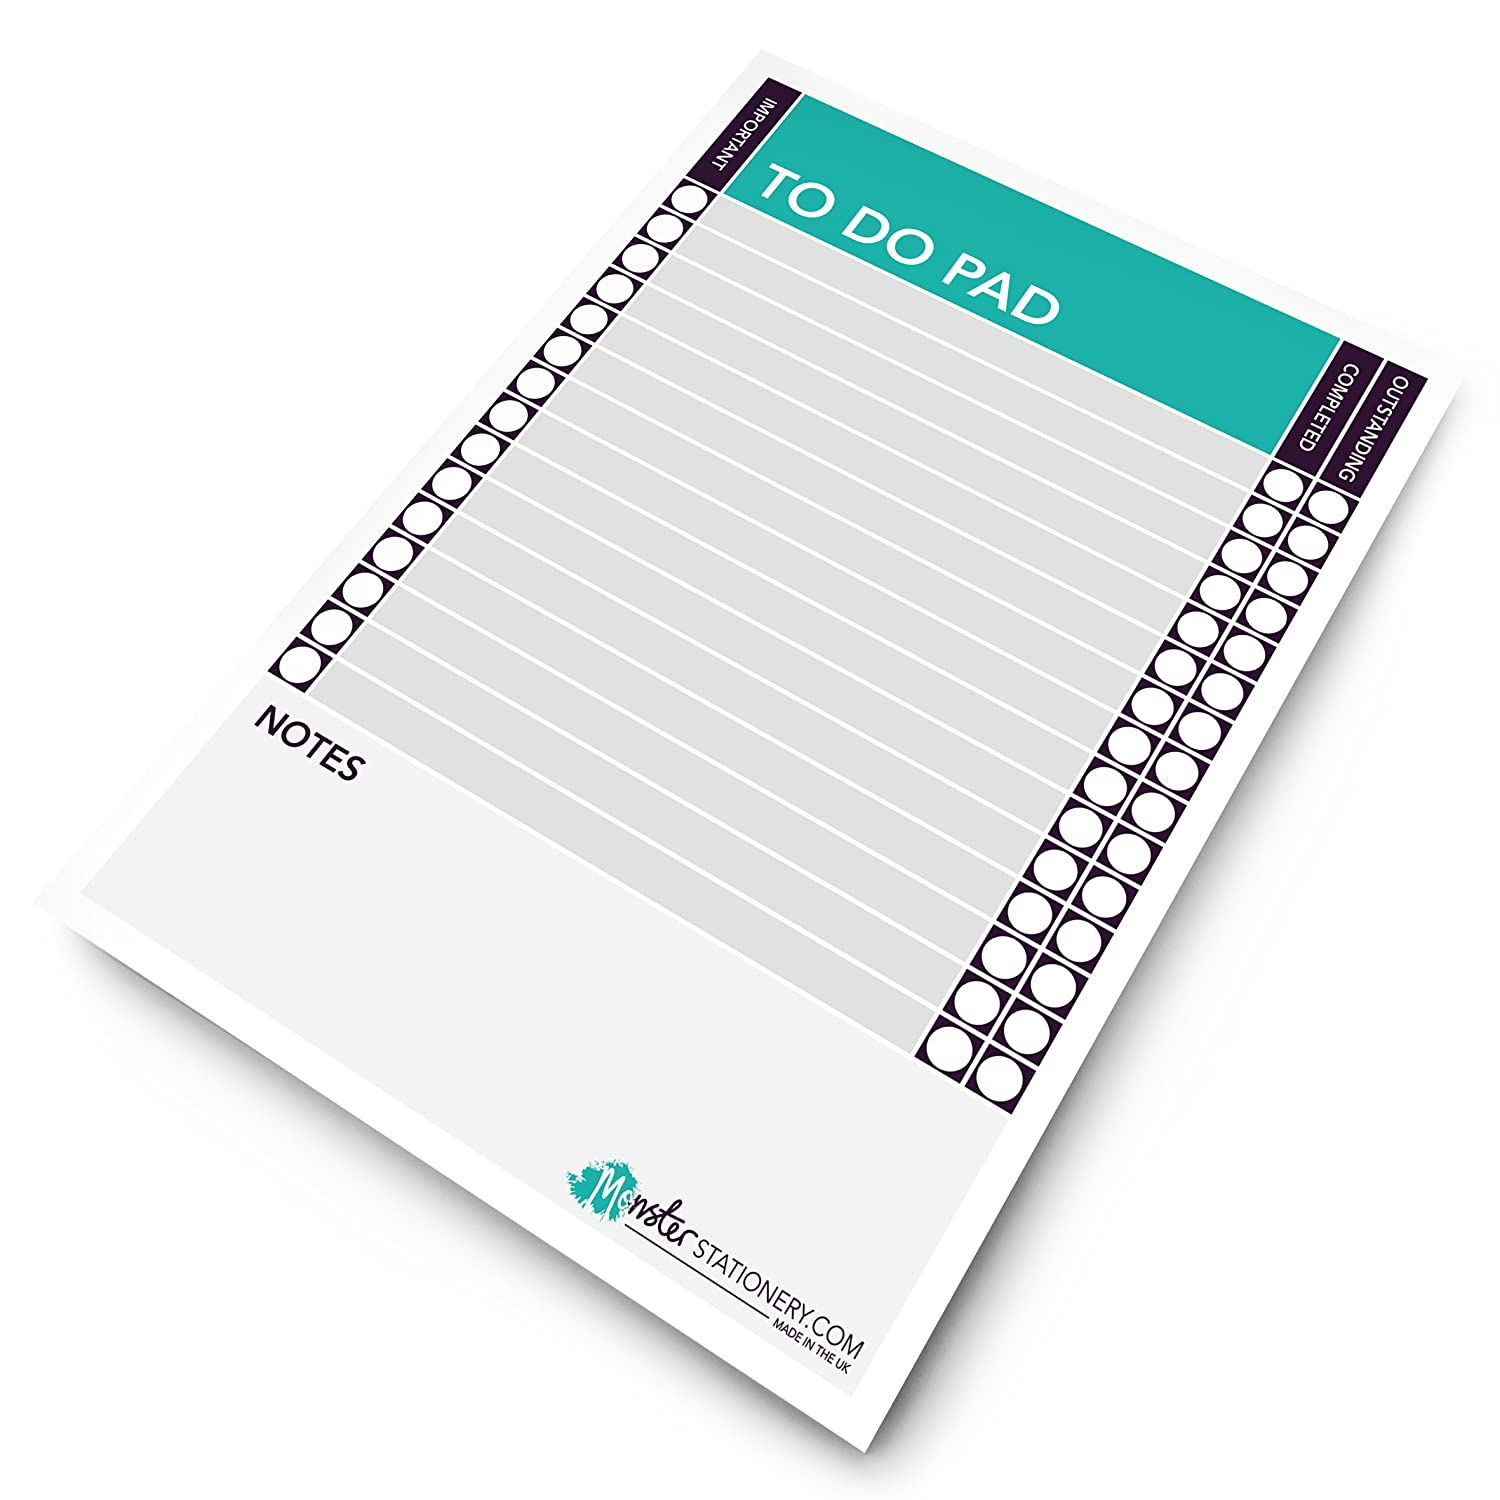 Monster stationery to do pad a5 daily plan to do today daily desk planner schedule to do pad 60 sheets 80gsm made in uk amazon co uk office